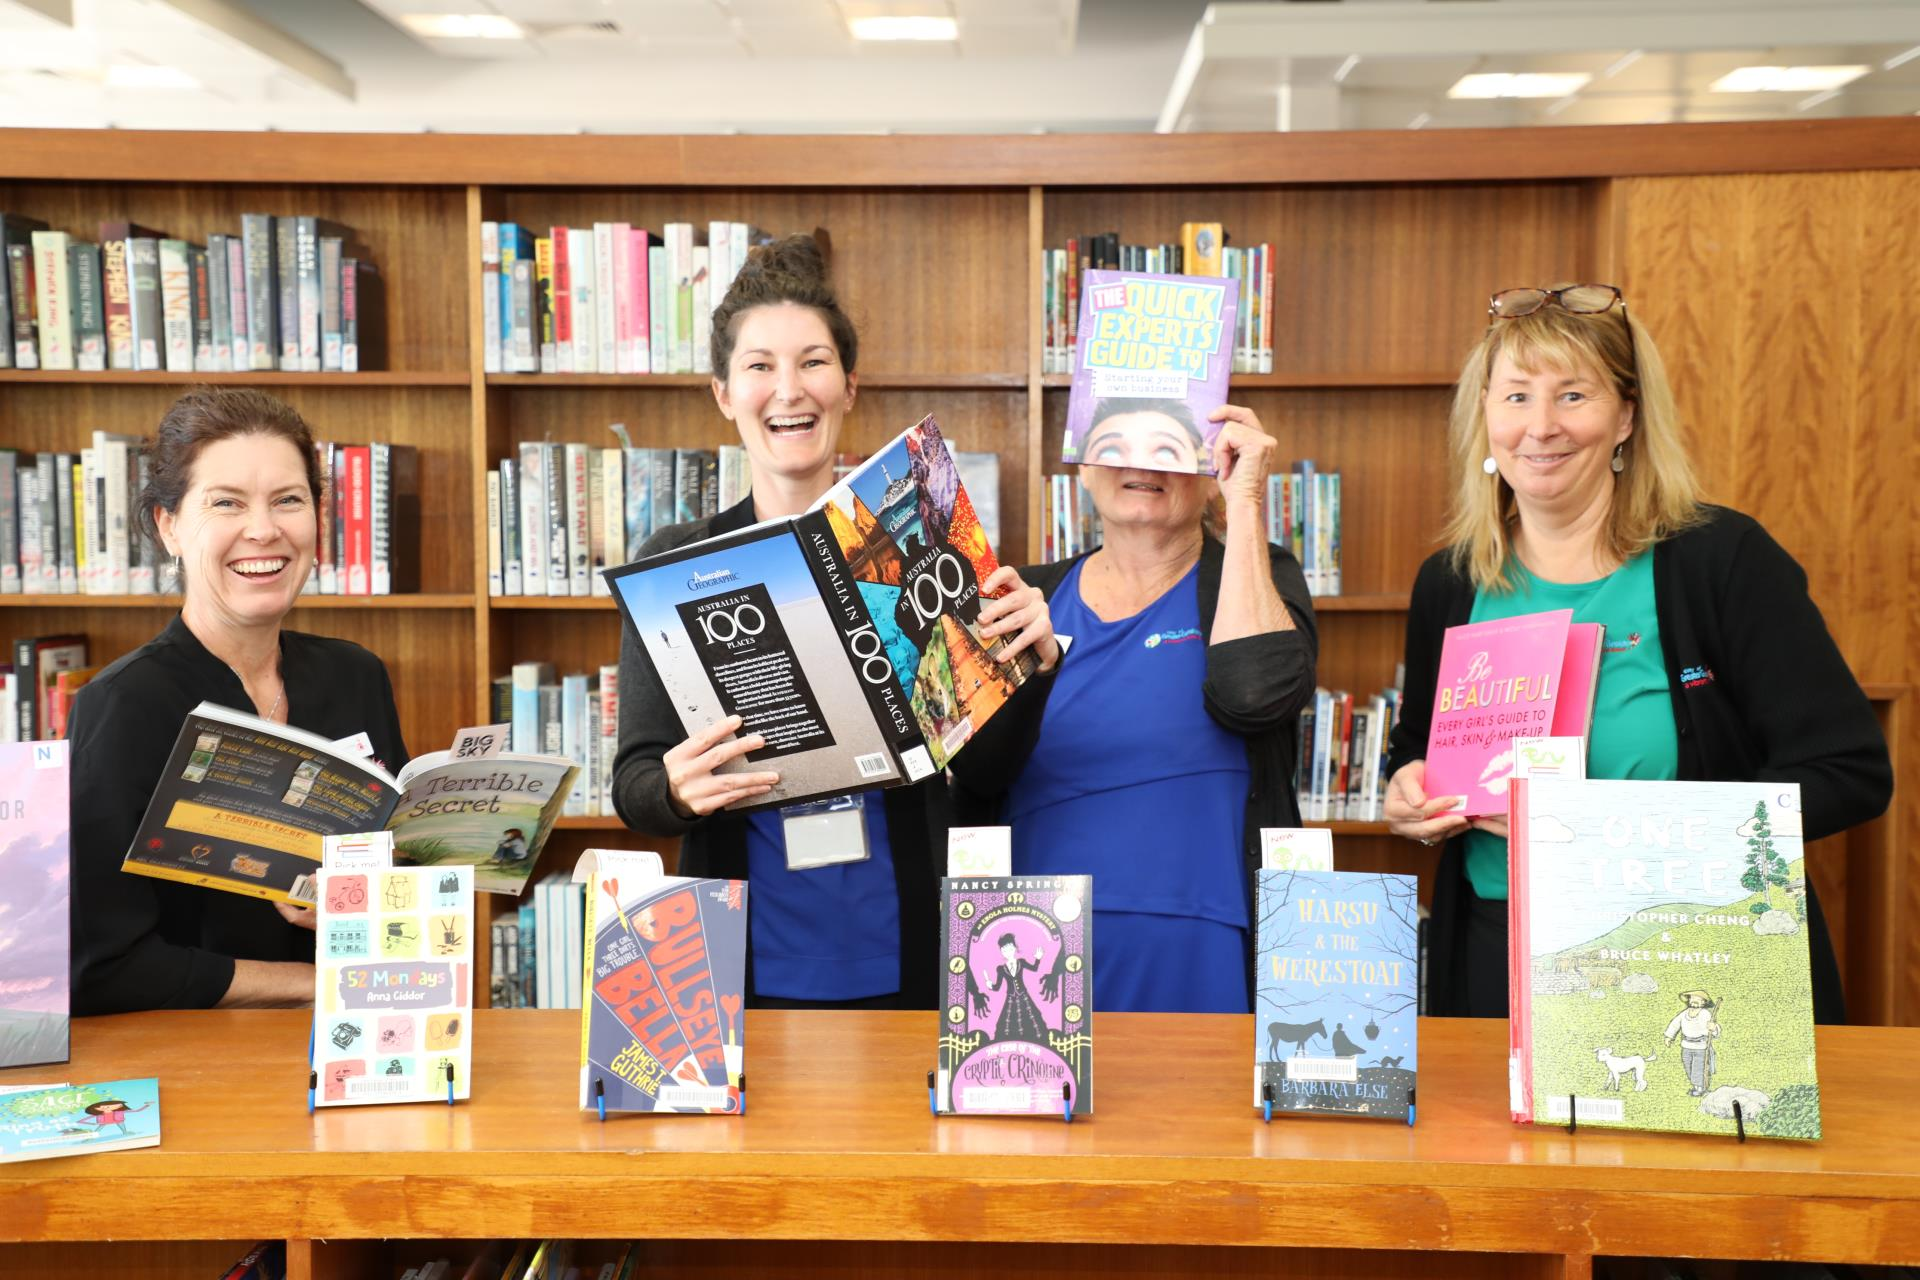 Library welcomes revamp